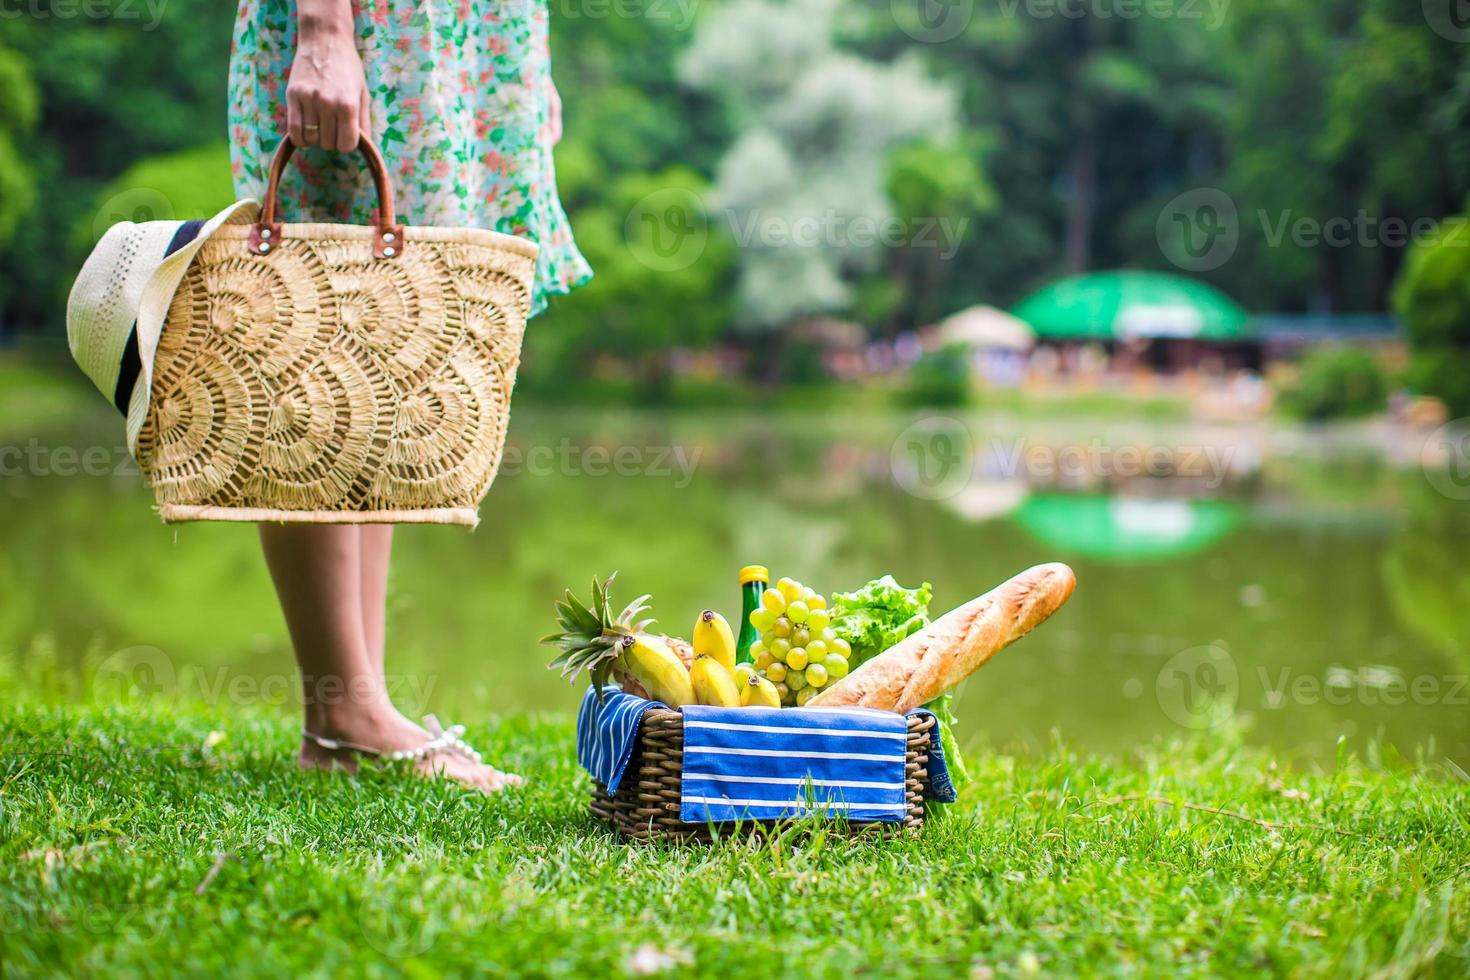 Picnic basket with fruits, bread and hat on straw bag photo